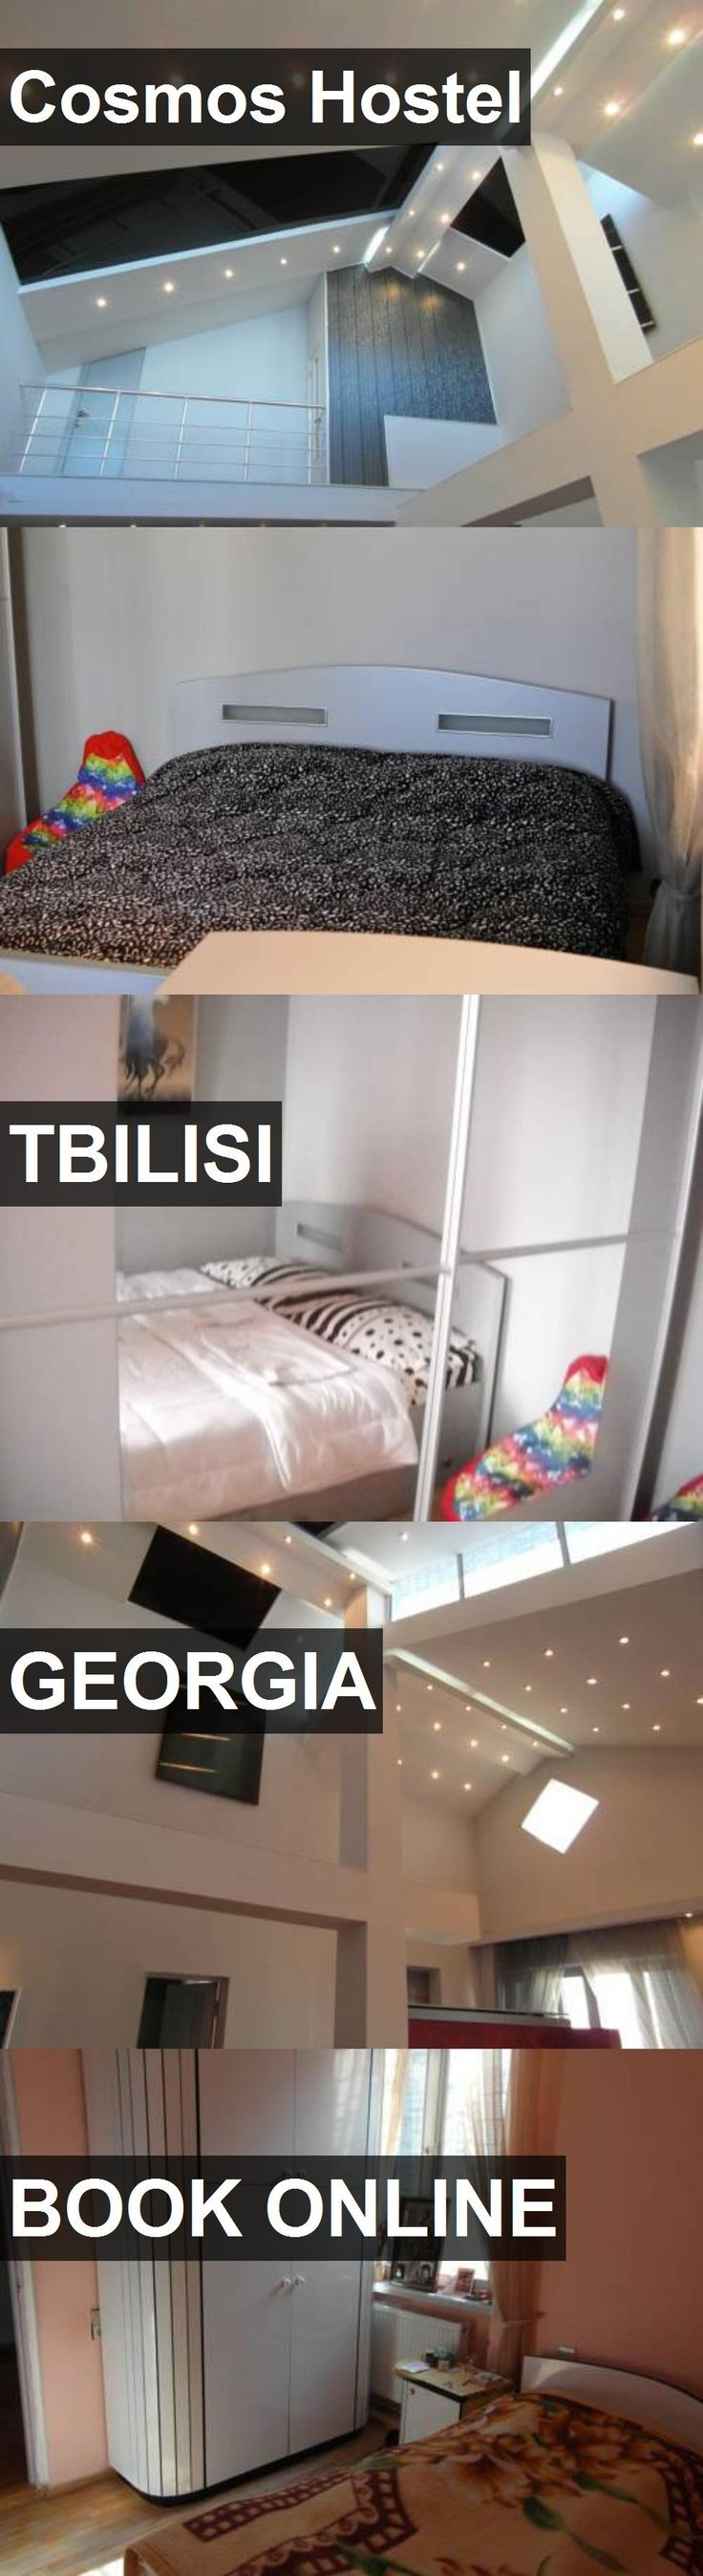 Cosmos Hostel in Tbilisi, Georgia. For more information, photos, reviews and best prices please follow the link. #Georgia #Tbilisi #travel #vacation #hostel